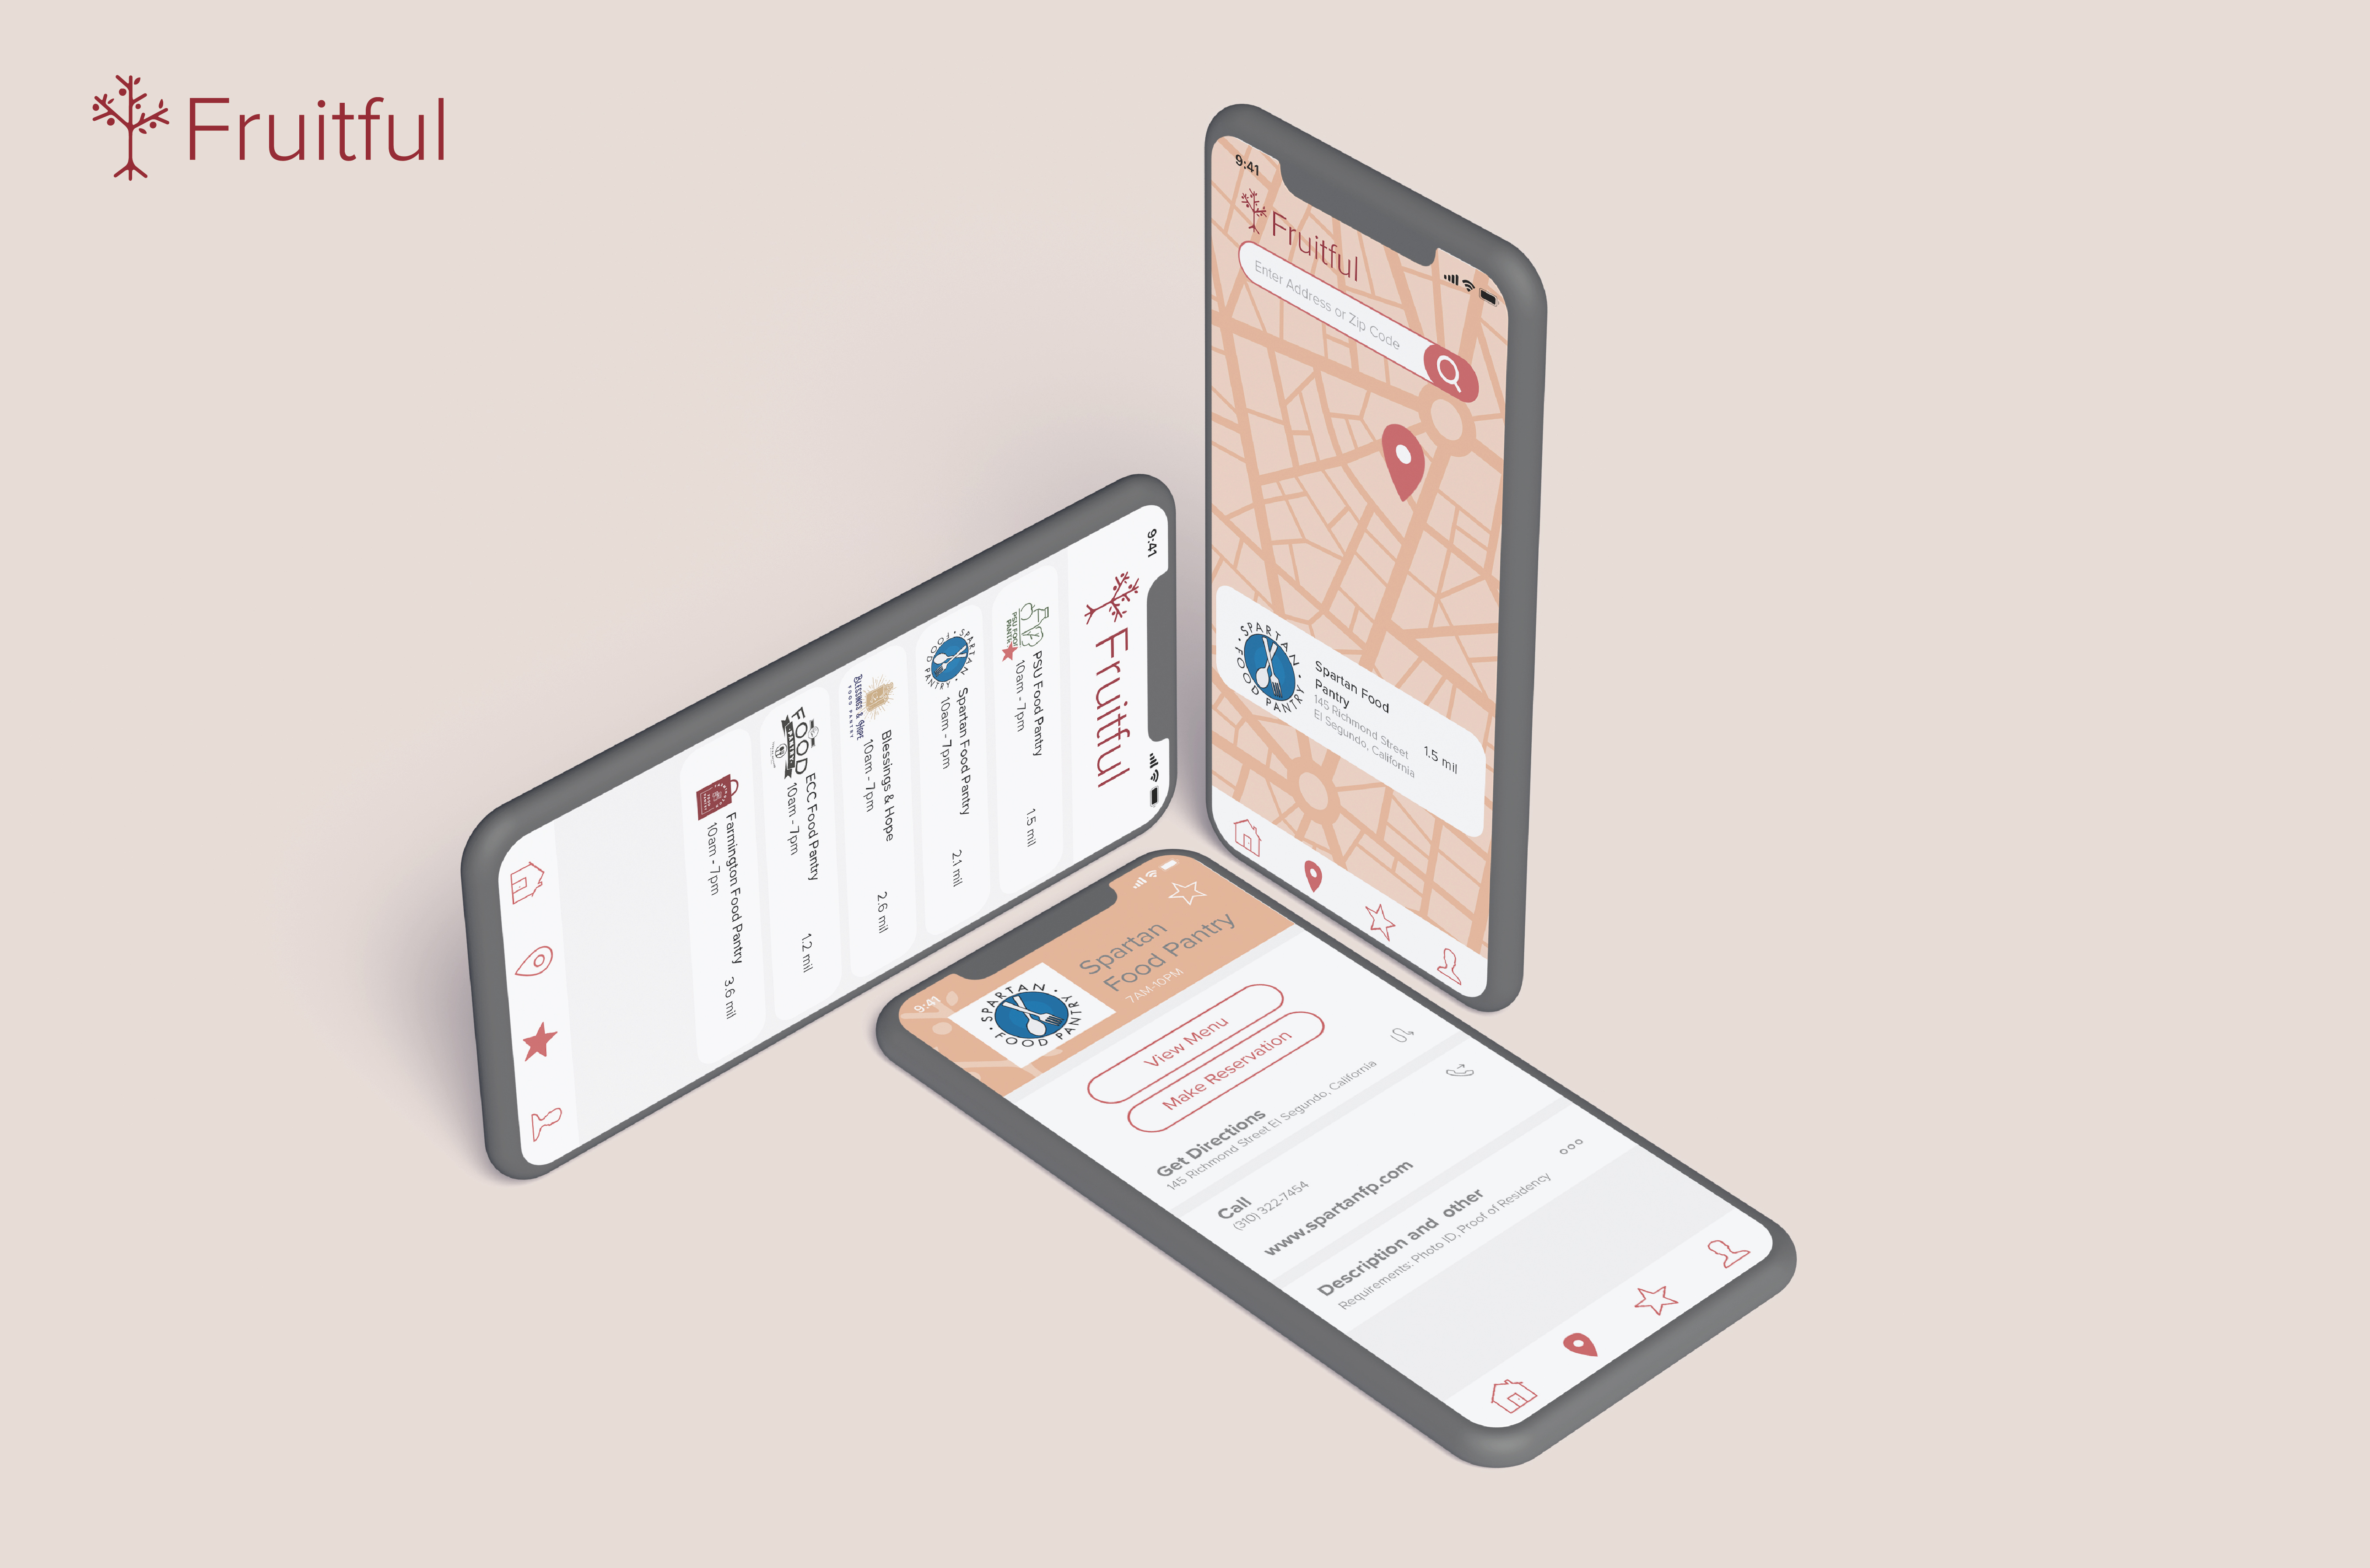 Main wireframes while using the Fruitful App.